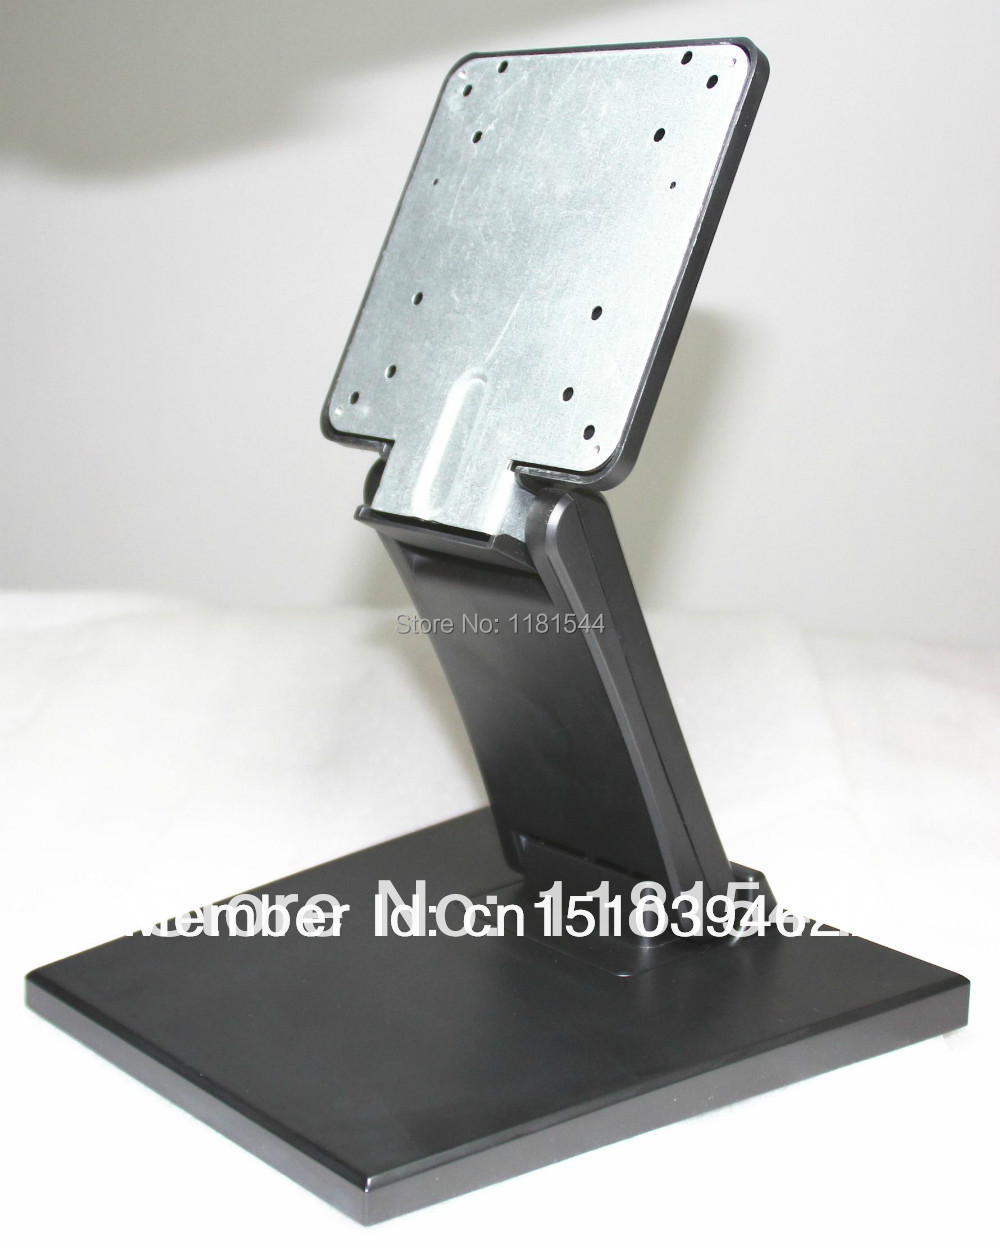 LCD Desktop Stand Bracket for Universal 10 24 inch LCD Monitor 180 Degrees Folded VESA Bracket